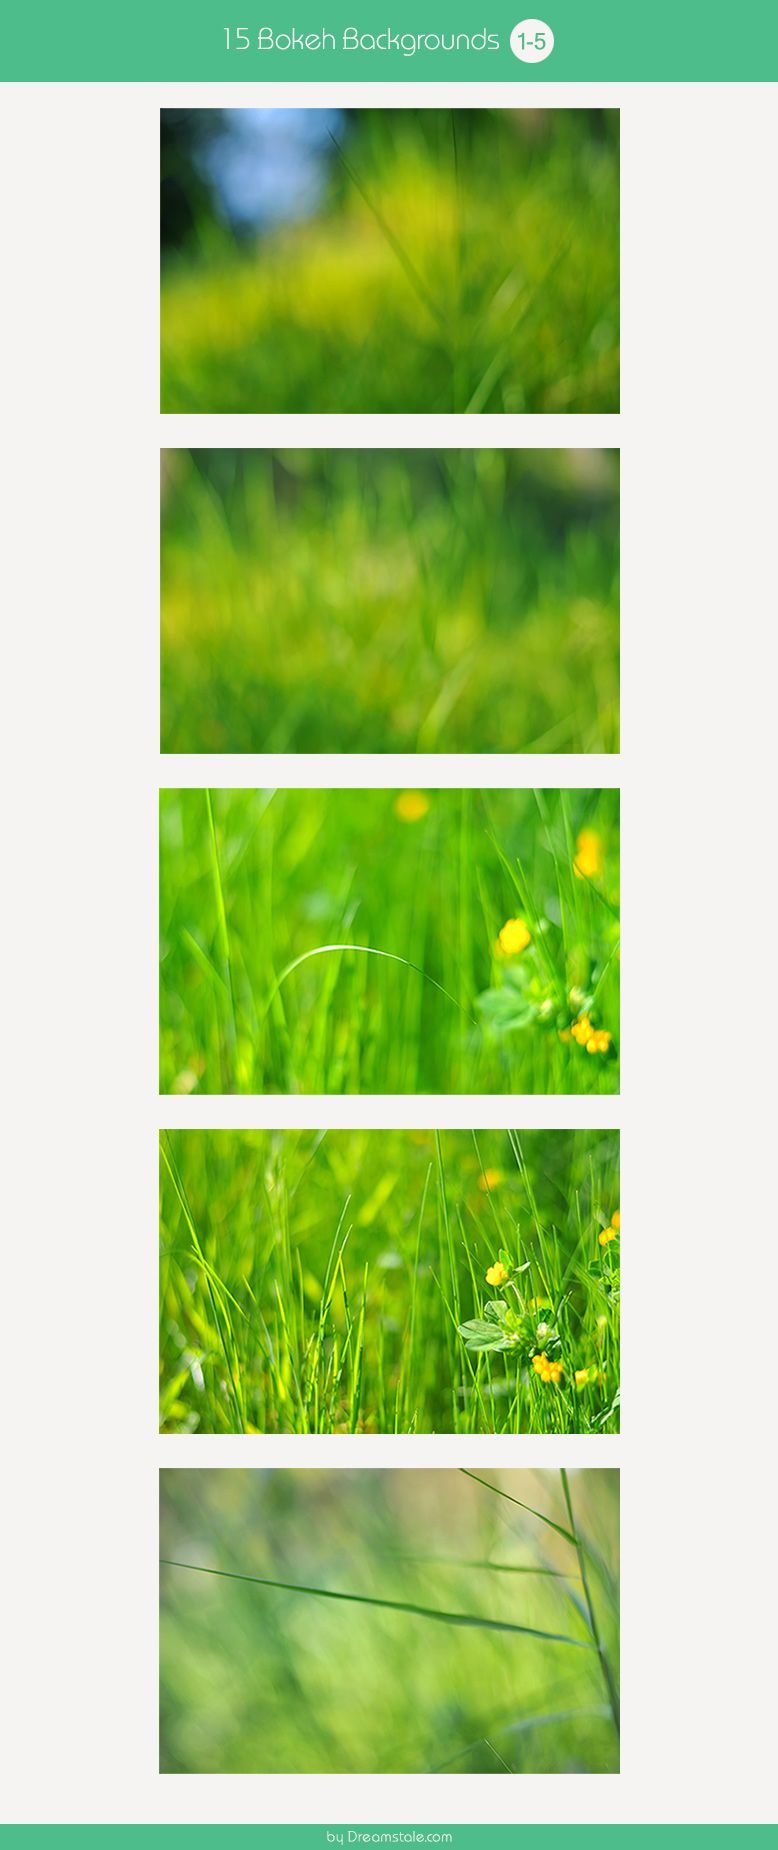 15-spring-bokeh-backgrounds-large-preview